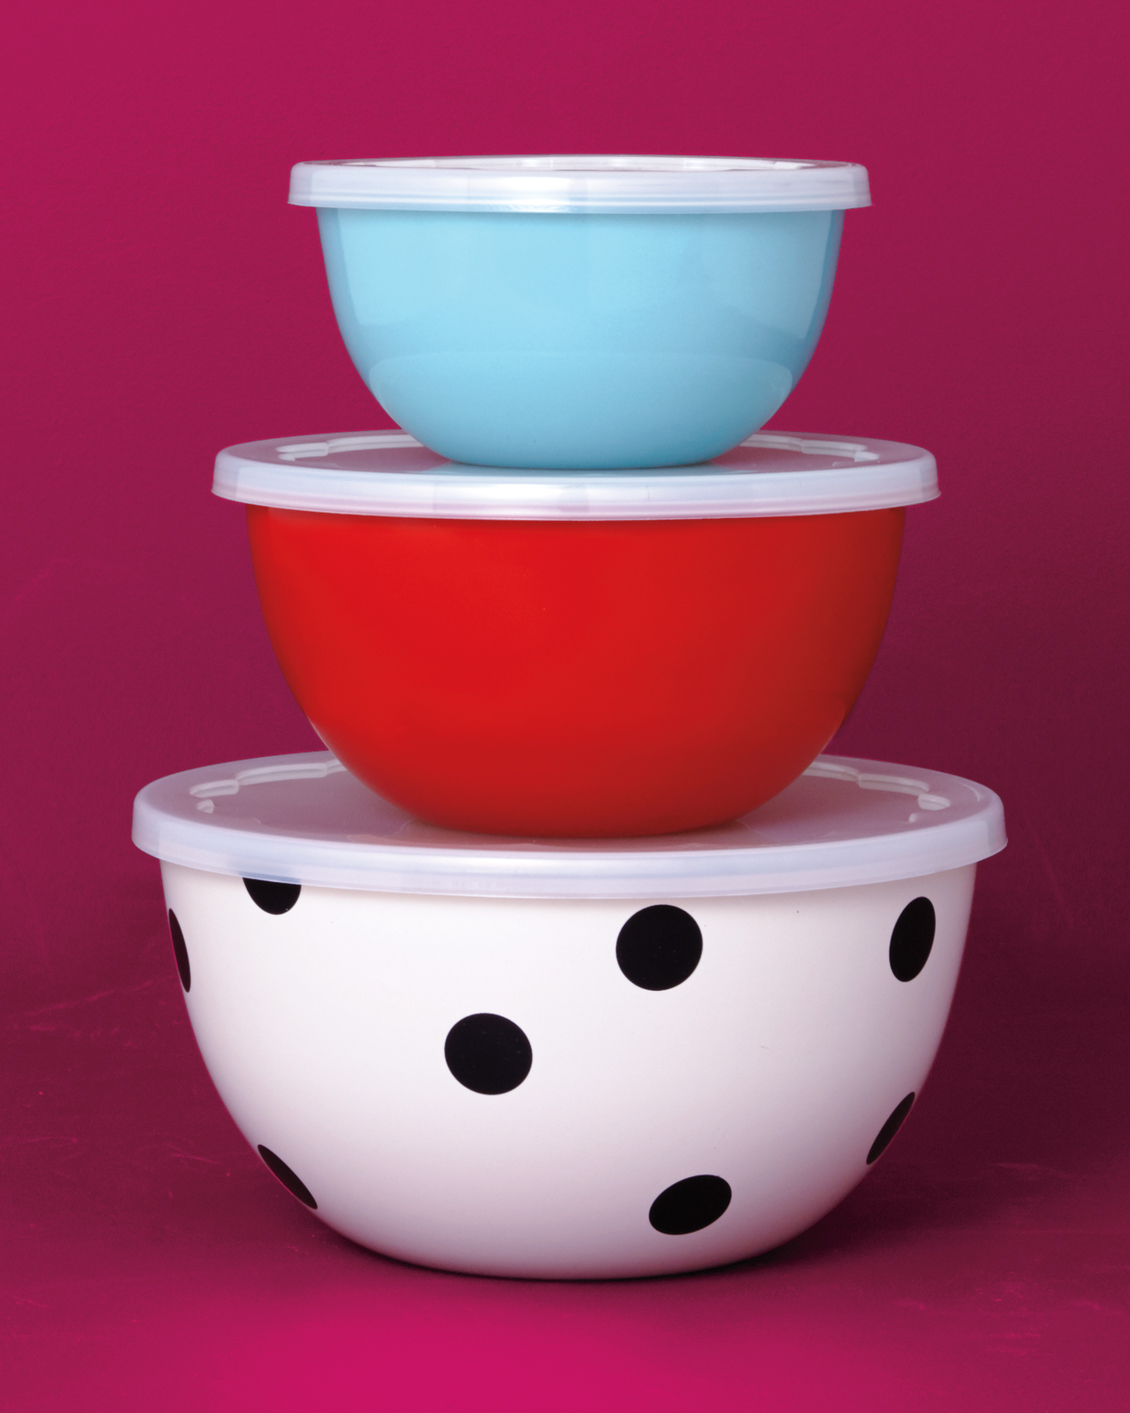 N is for Nesting Bowls